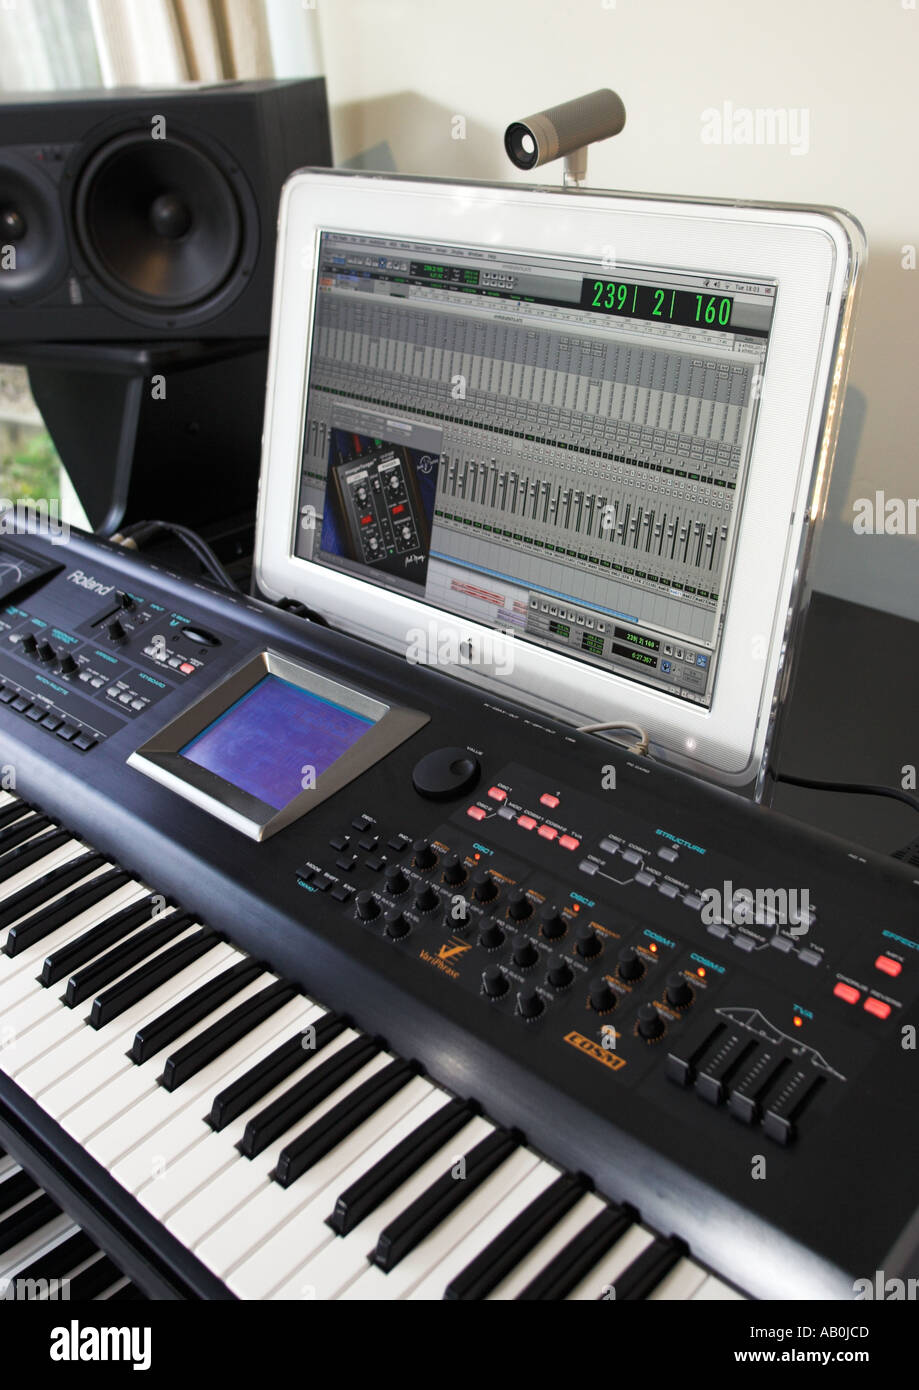 Software Synthesizer Stock Photos & Software Synthesizer